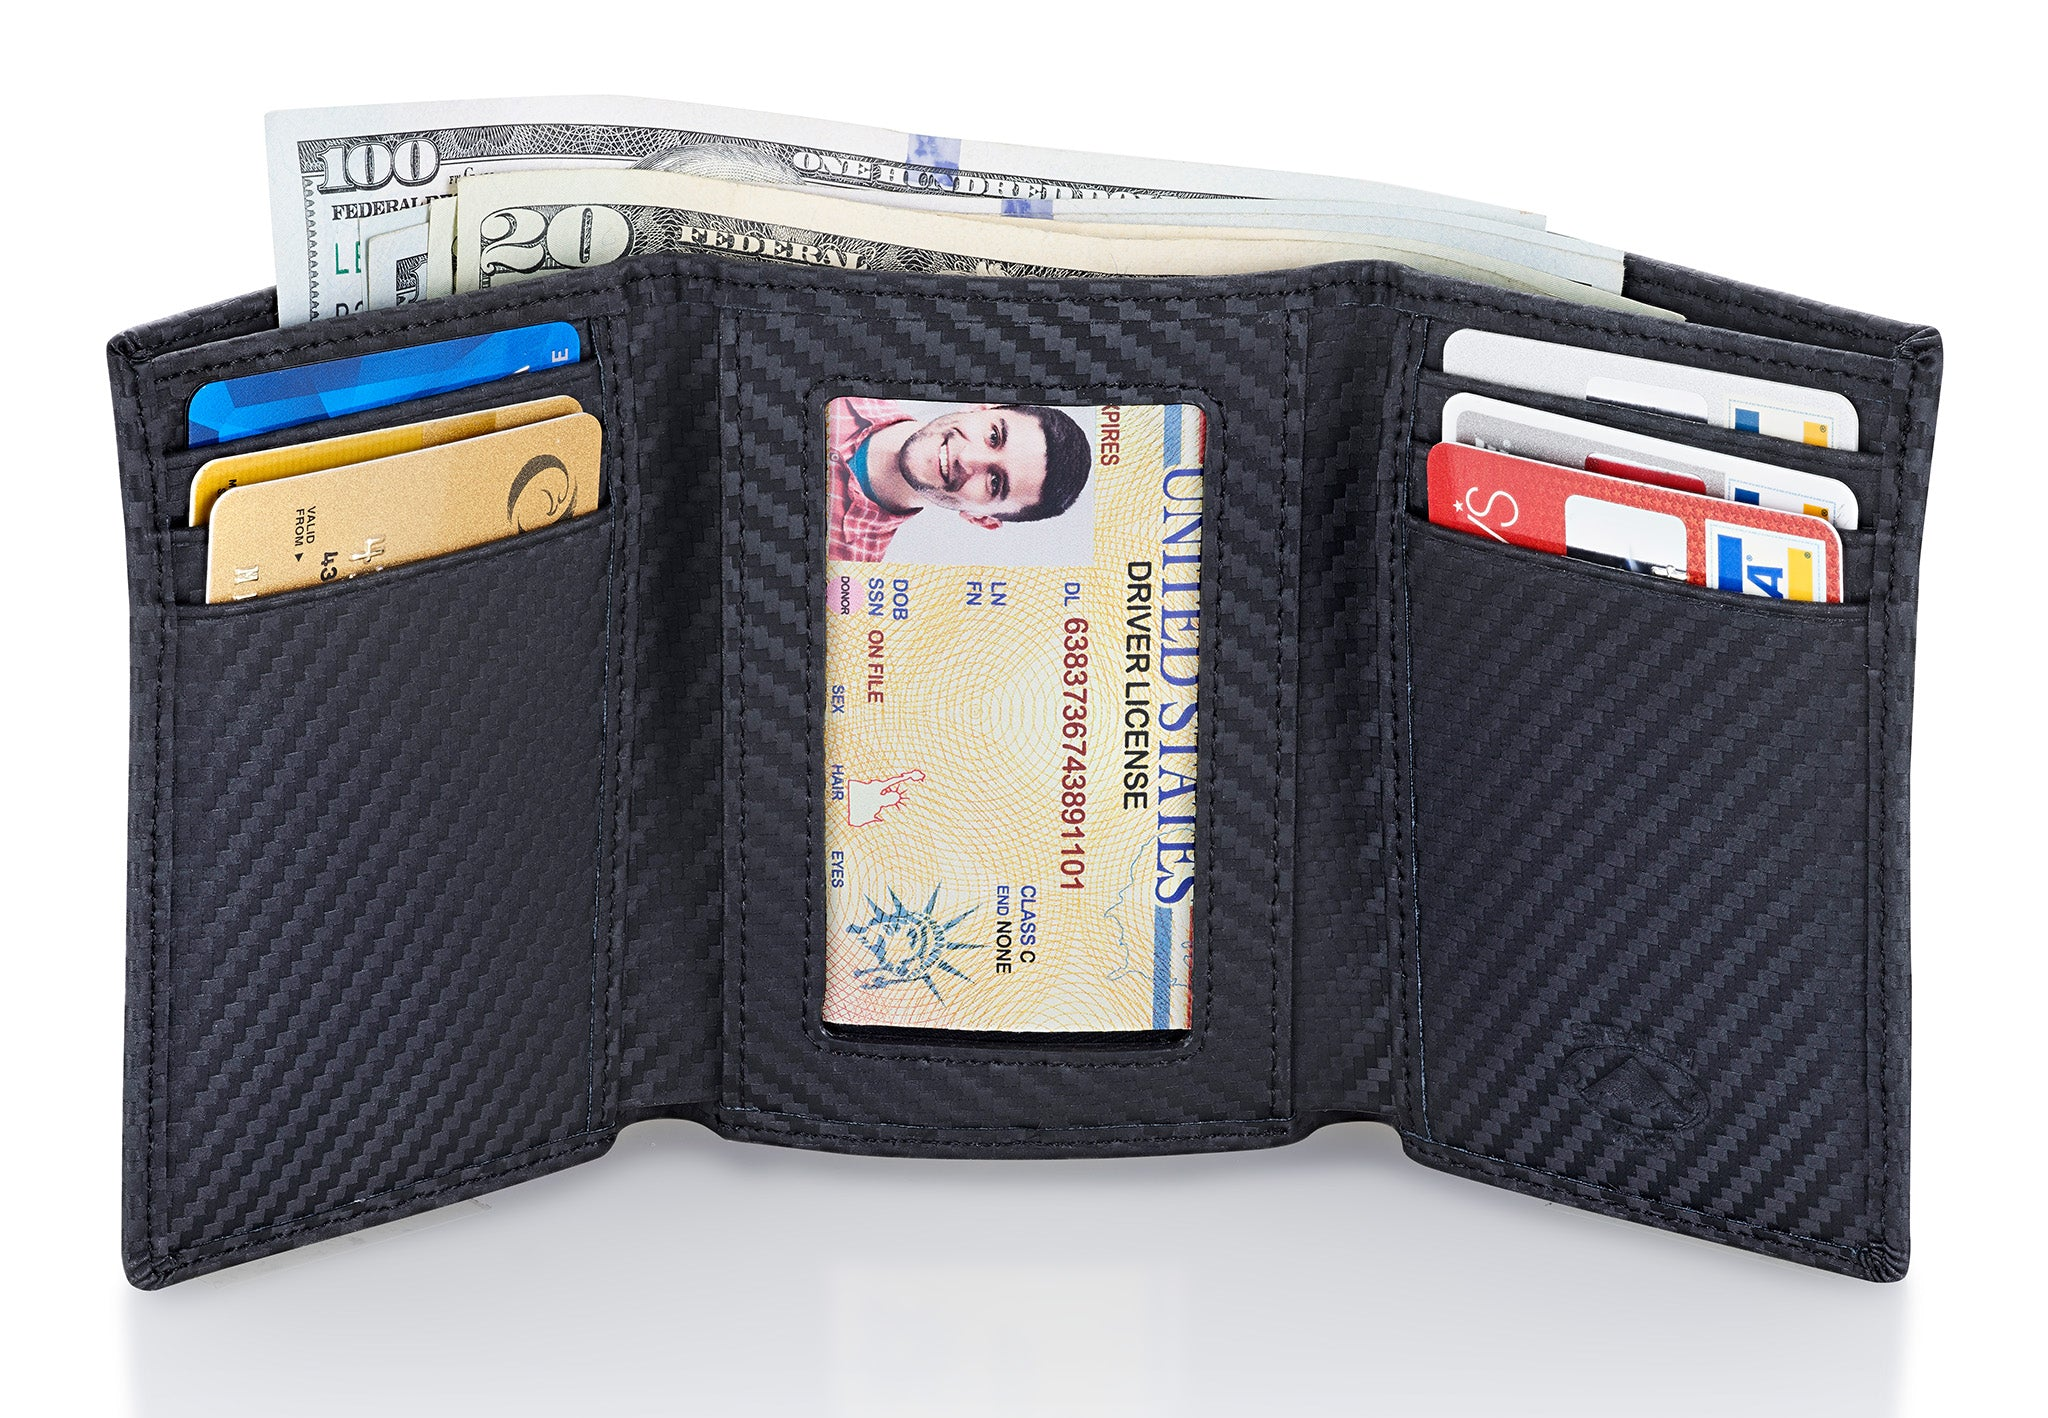 Stealth Mode Trifold RFID Blocking Carbon Fiber Wallet for Men